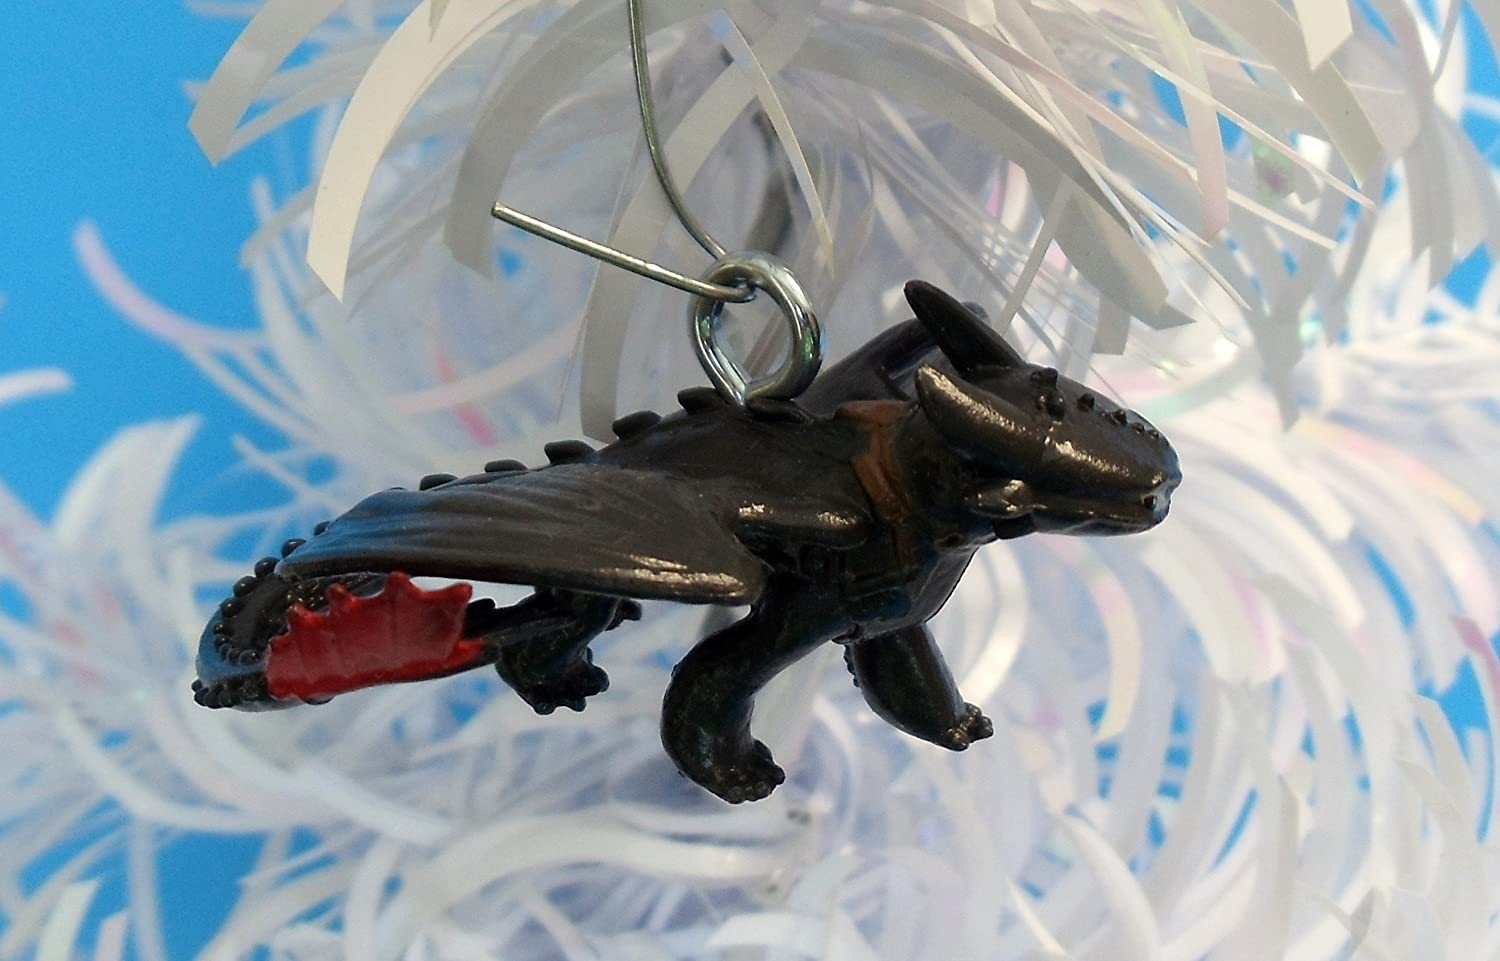 Amazon how to train your dragon 2 christmas ornaments featuring amazon how to train your dragon 2 christmas ornaments featuring hiccup astrid toothless eret hookfang meatlug stormfly thornado cloudjumper ccuart Image collections